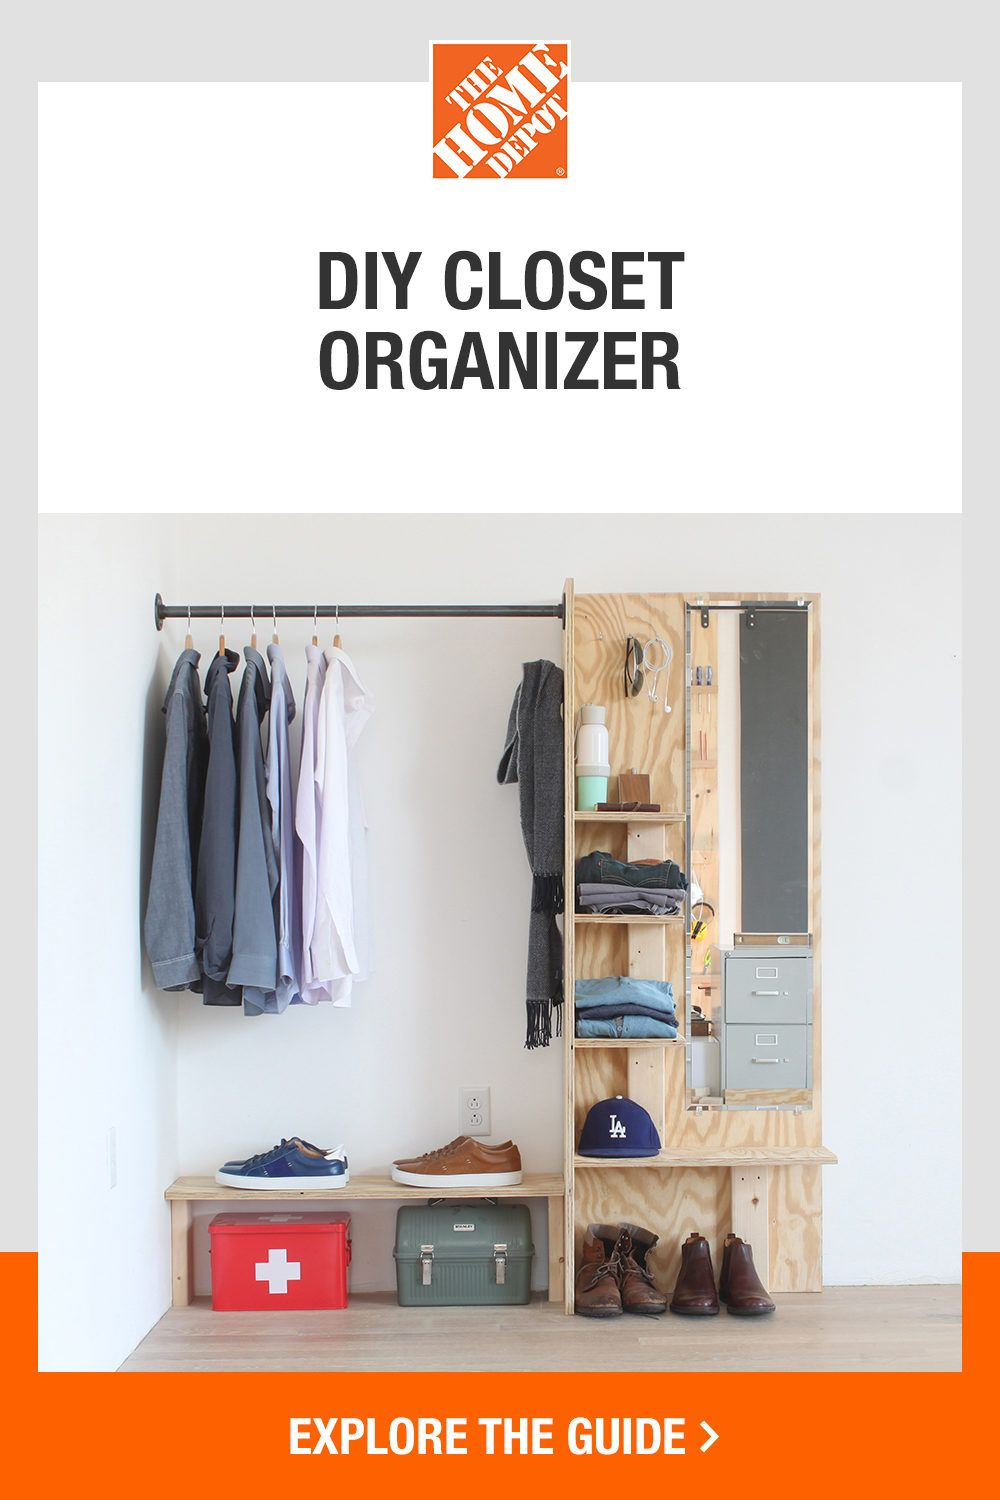 Make your morning routine a bit easier with a DIY closet organizer. The Home Depot guide provides step-by-step instructions on how to maximize your storage space and make existing spaces more functional—all with minimal tools. Click to start this simple DIY project with The Home Depot.